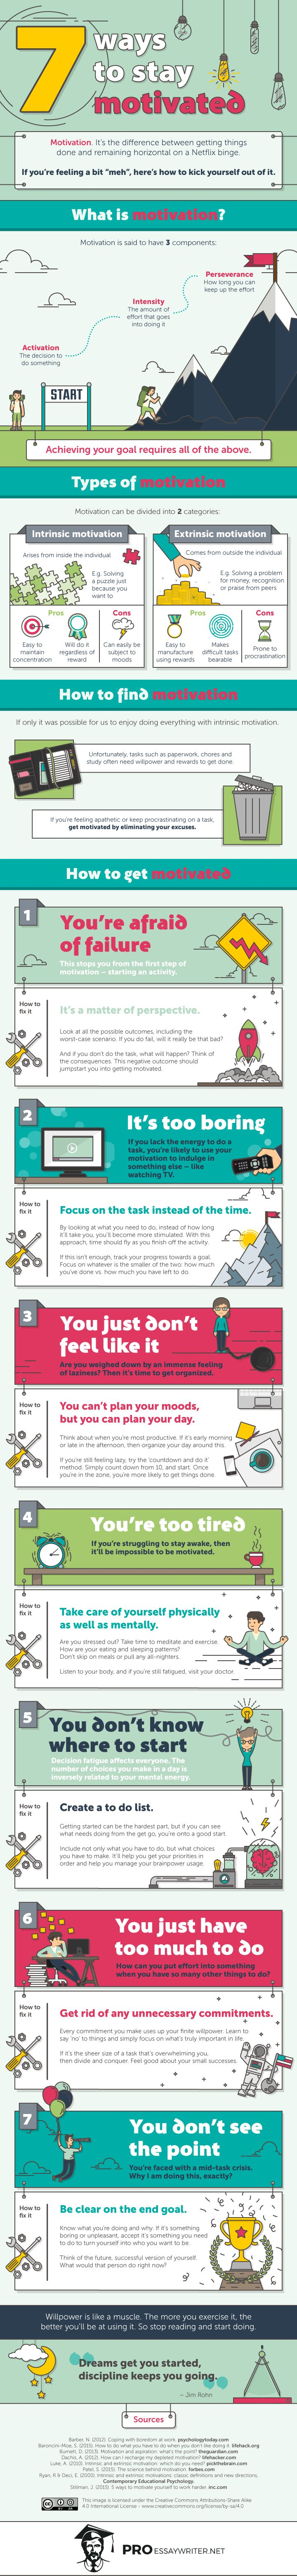 7 Ways to Stay Motivated at Work [Infographic], via @HubSpot Contact us for custom quotes prints on canvas or vinyl